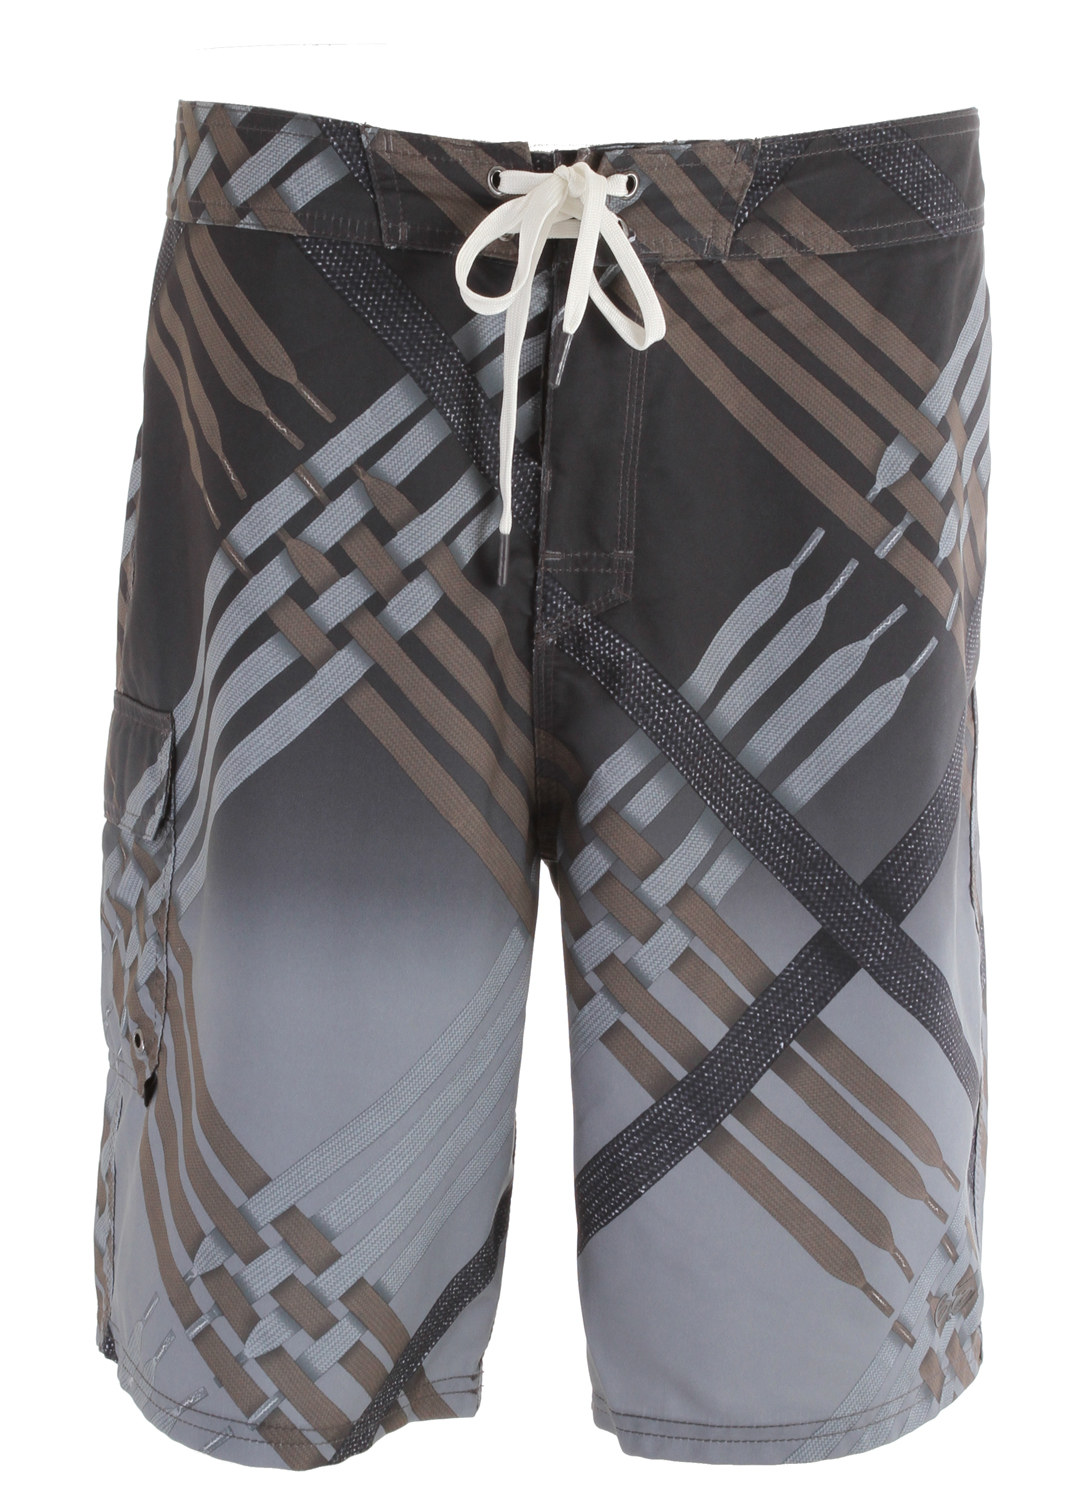 Surf Primed for any adventure on the board or on the beach, the Nike Scout Photo Men's Cargo Board Shorts are durable, quick-drying and feature true-to-life graphics.Key Features of the Nike Scout Boardshorts: Lace-up closure with rib-lined fly for an adjustable fit Patch pockets with vented eyelets and VELCRO brand fastener for secure storage Allover graphic Fabric: 100% recycled polyester Machine wash - $38.95